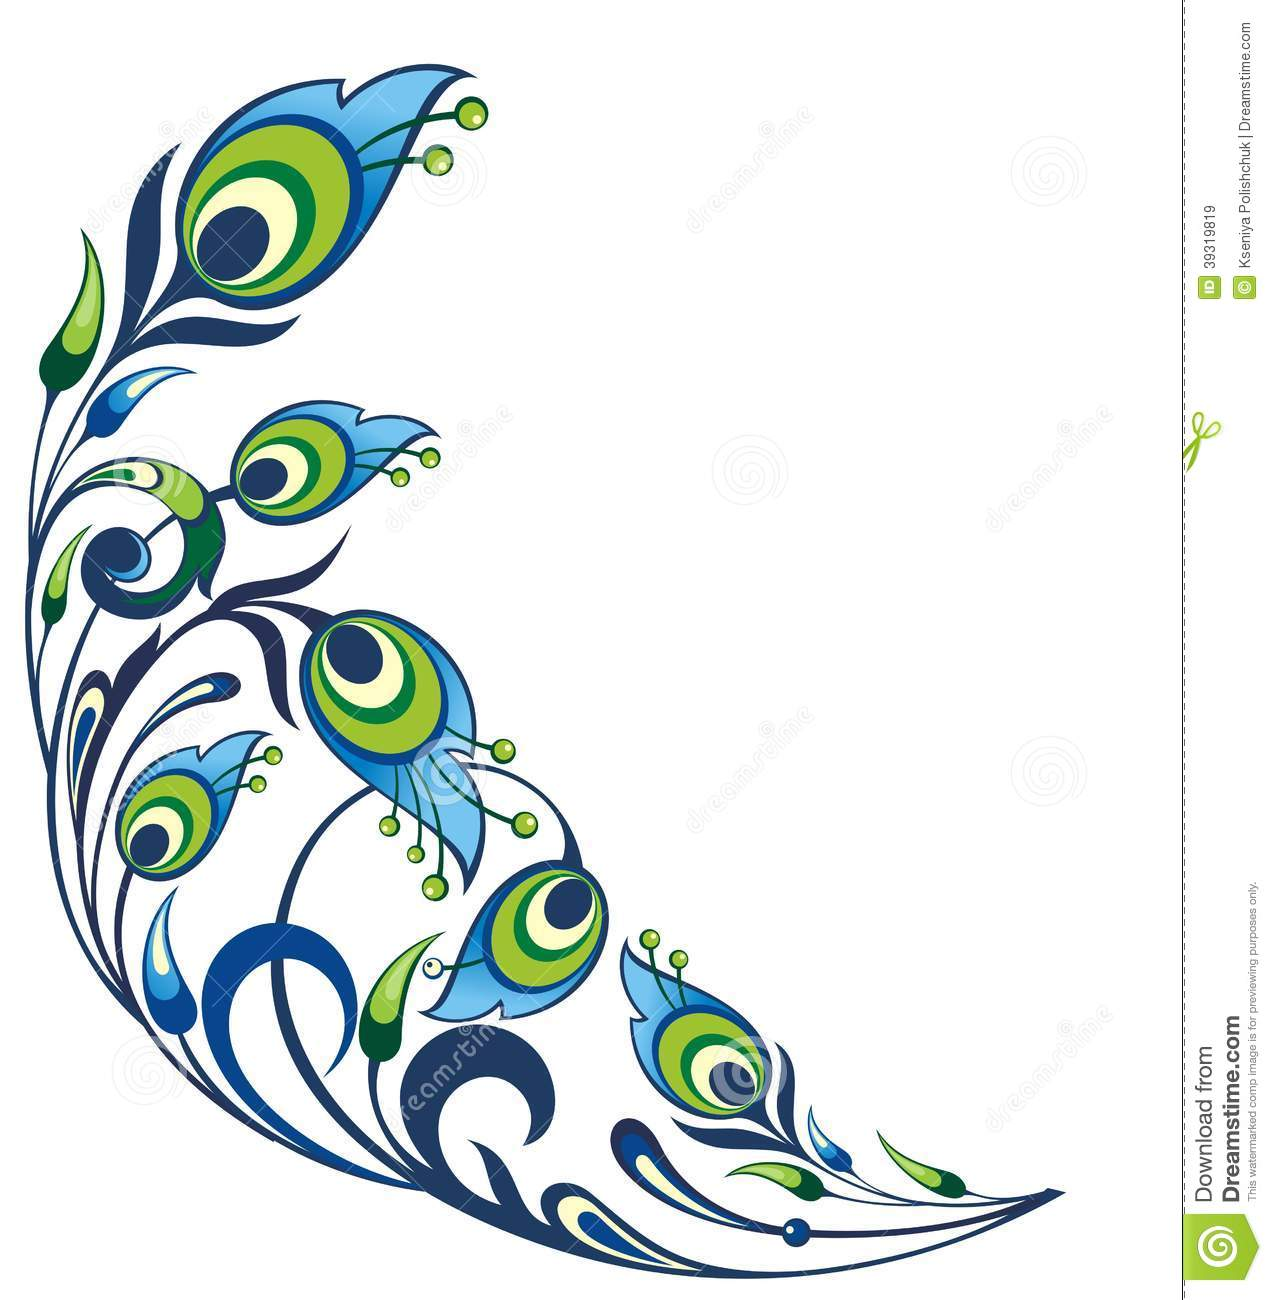 Peacock Feathers Background Stock Vector - Image: 39319819